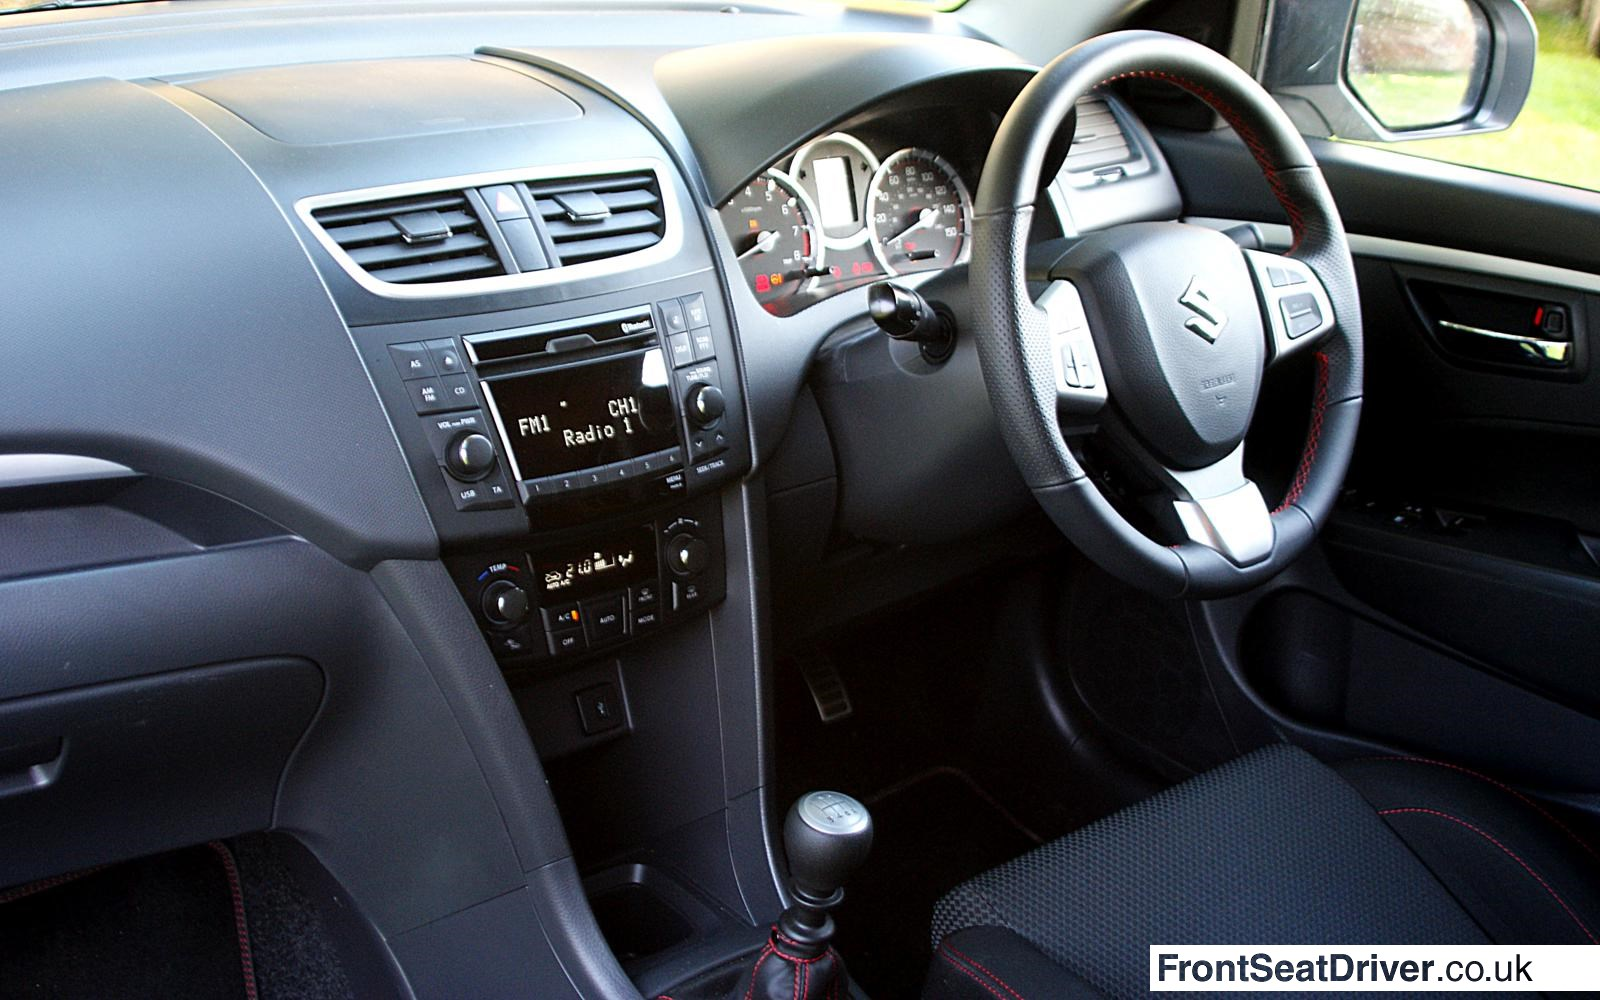 http://www.frontseatdriver.co.uk/wp-content/uploads/2013/04/Suzuki-Swift-Sport-2013-Interior.jpg